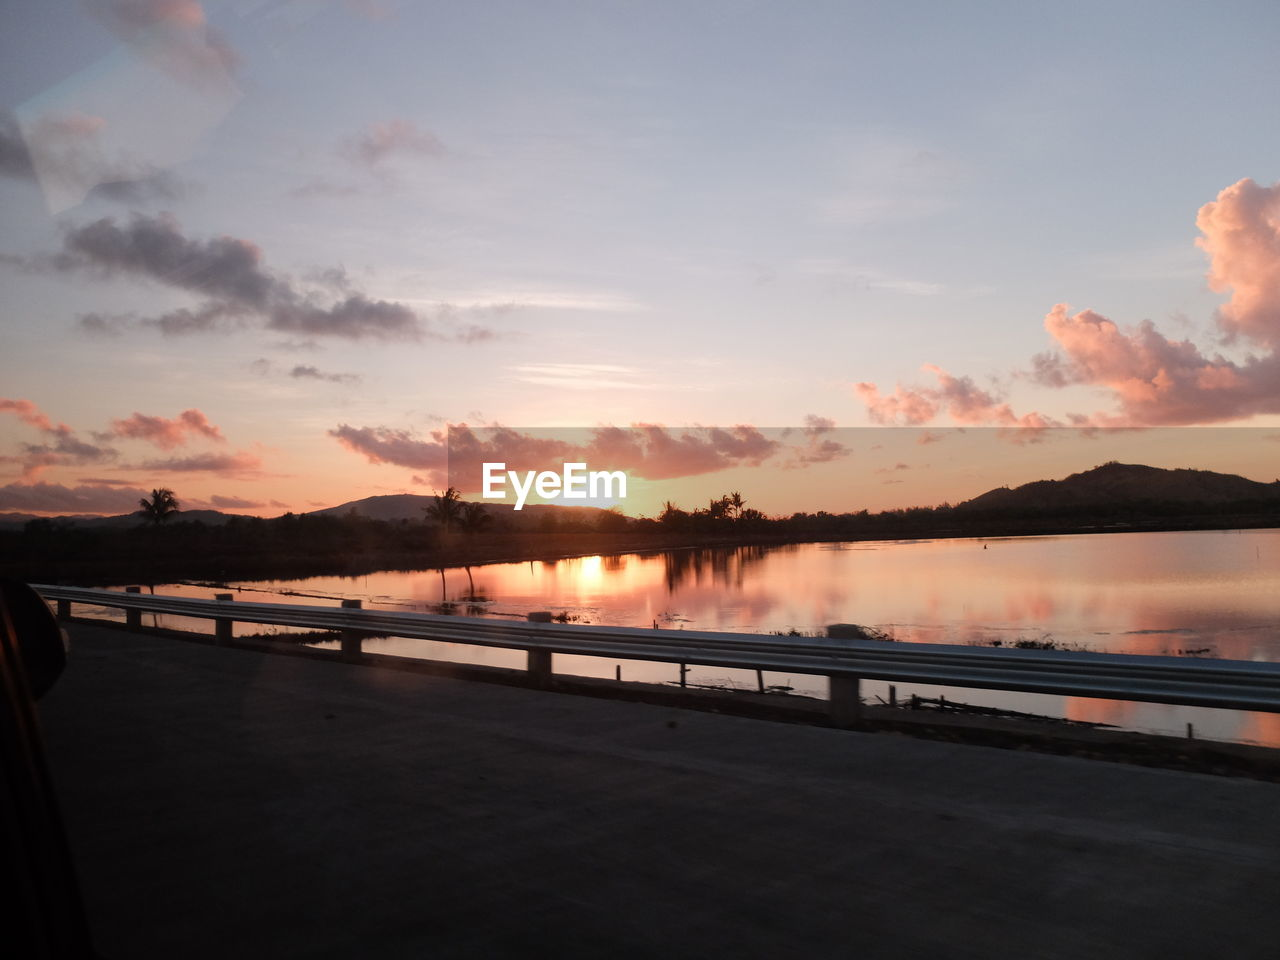 sky, sunset, cloud - sky, water, beauty in nature, scenics - nature, nature, tranquility, tranquil scene, orange color, reflection, transportation, railing, no people, lake, outdoors, non-urban scene, idyllic, connection